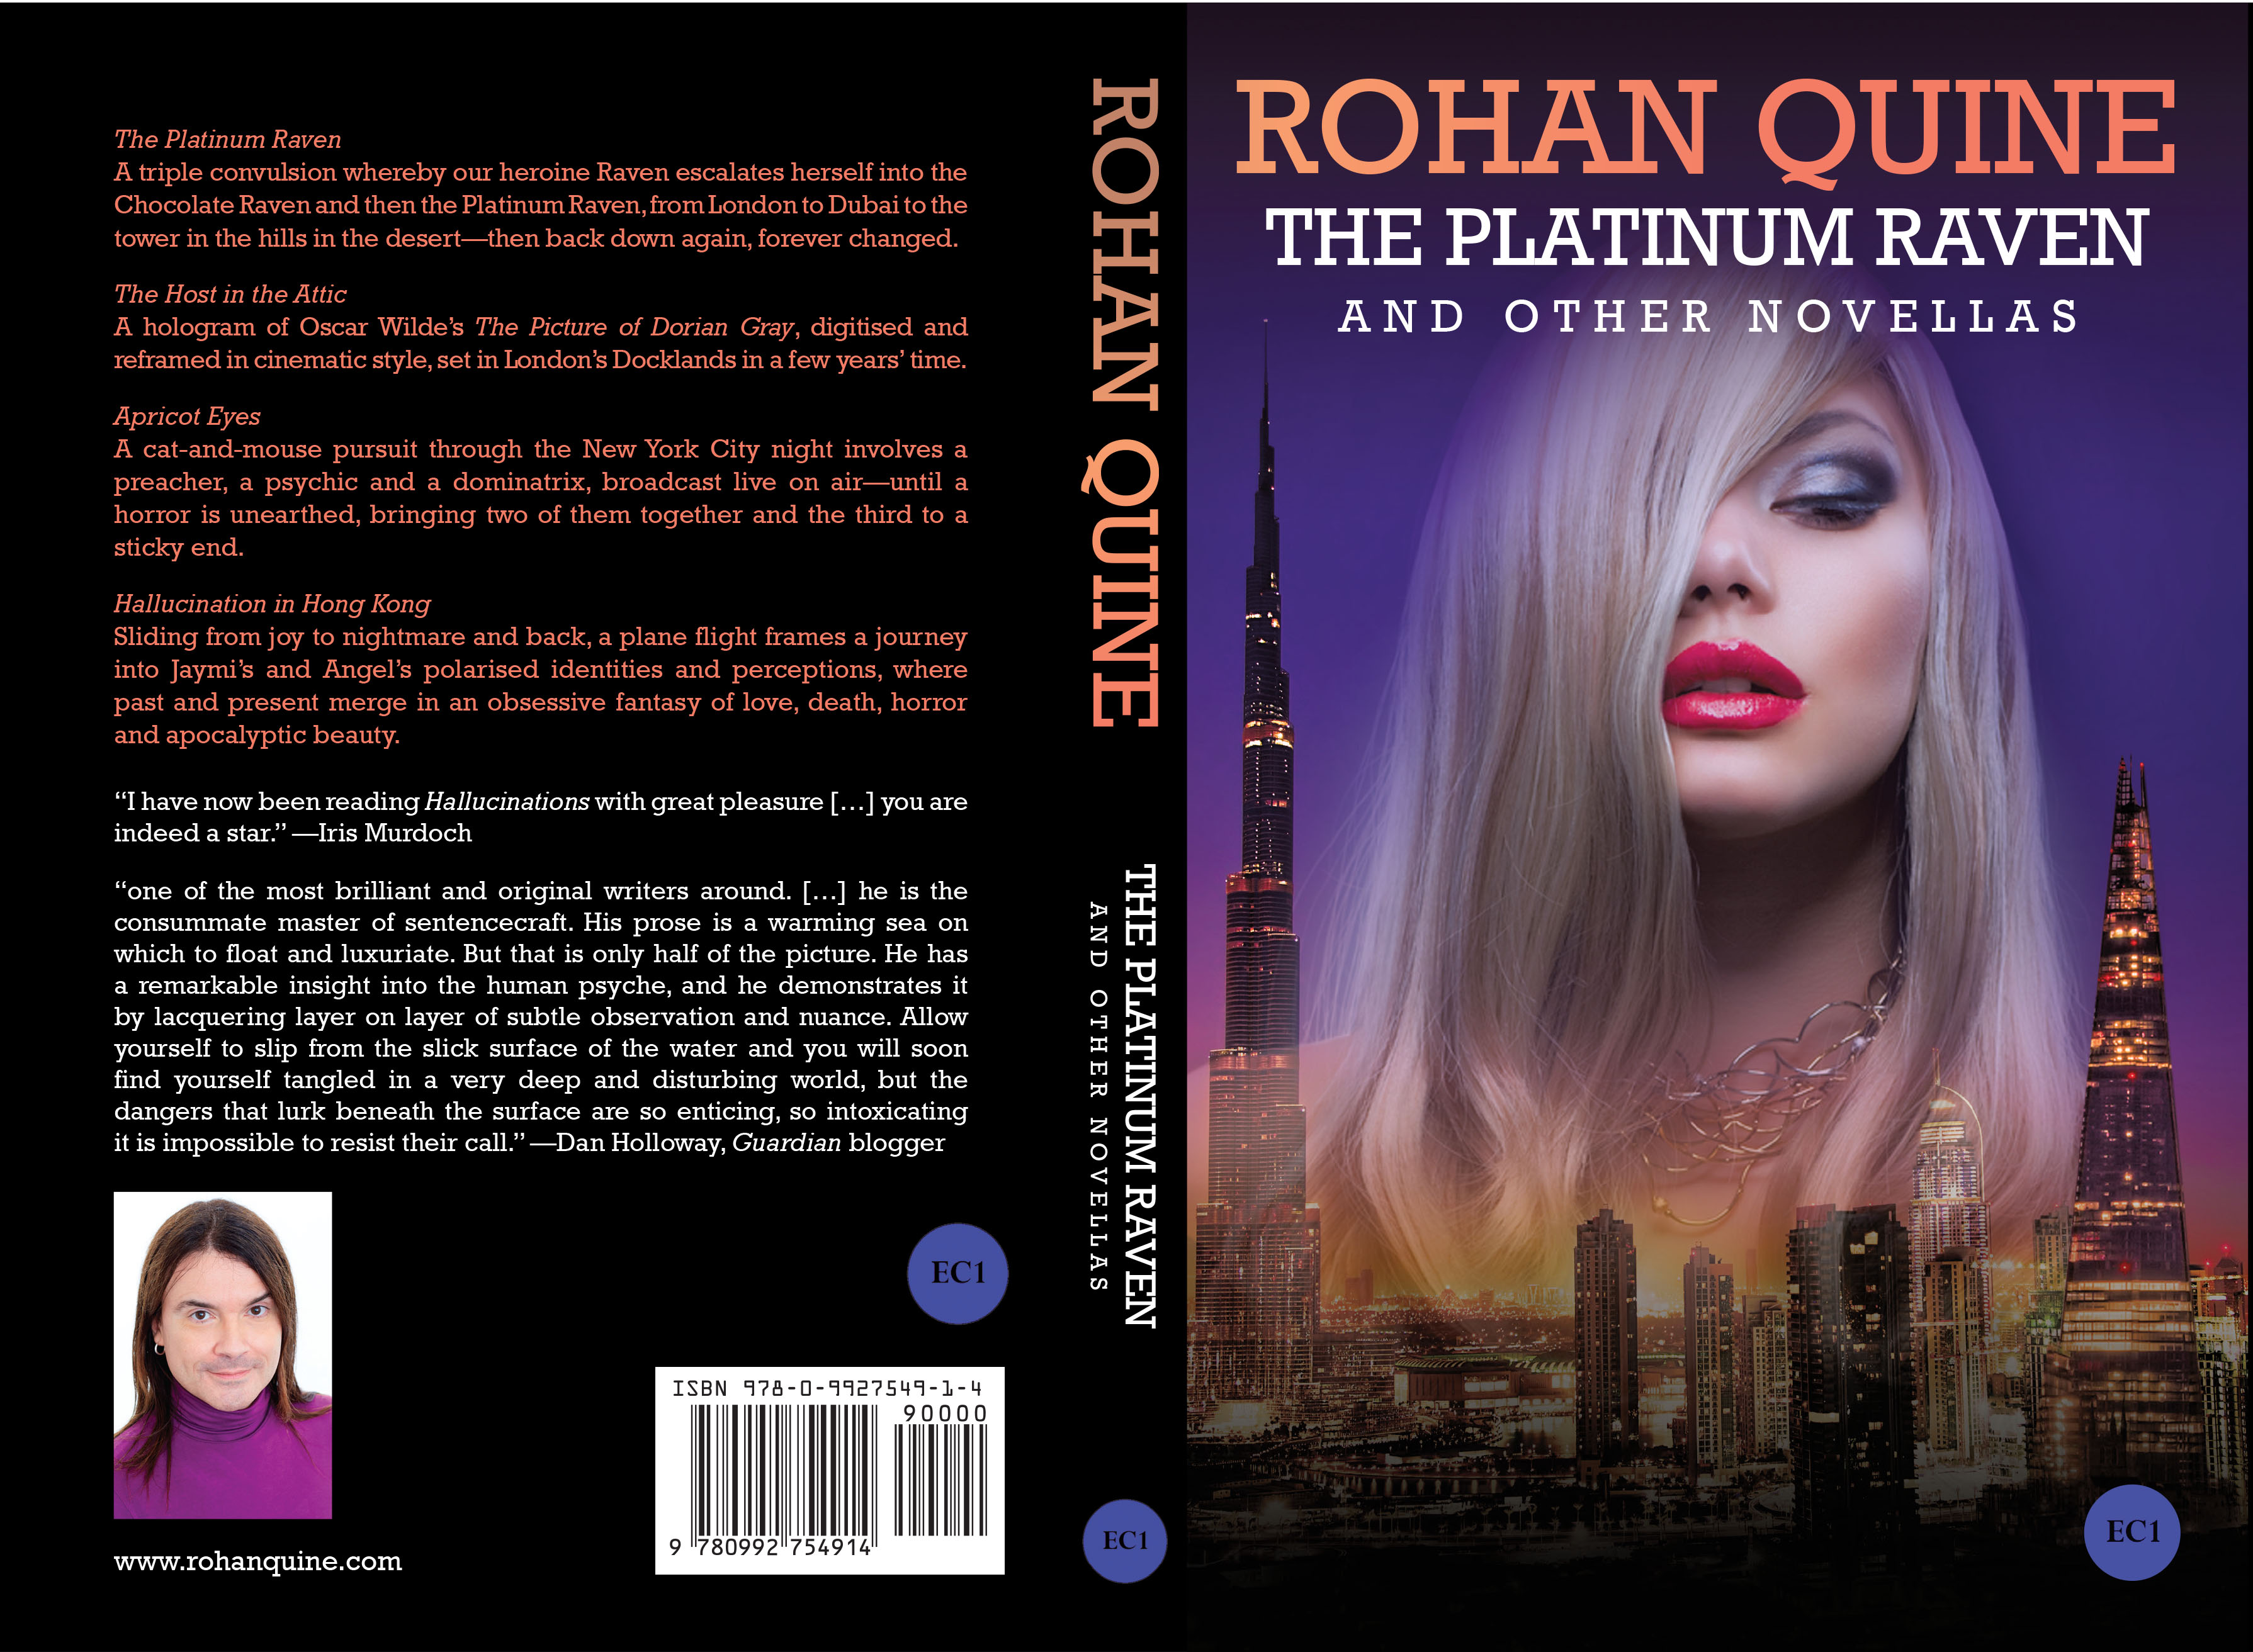 Rohan Quine - The Platinum Raven and other novellas - paperback full cover (literary fiction, magical realism, horror)